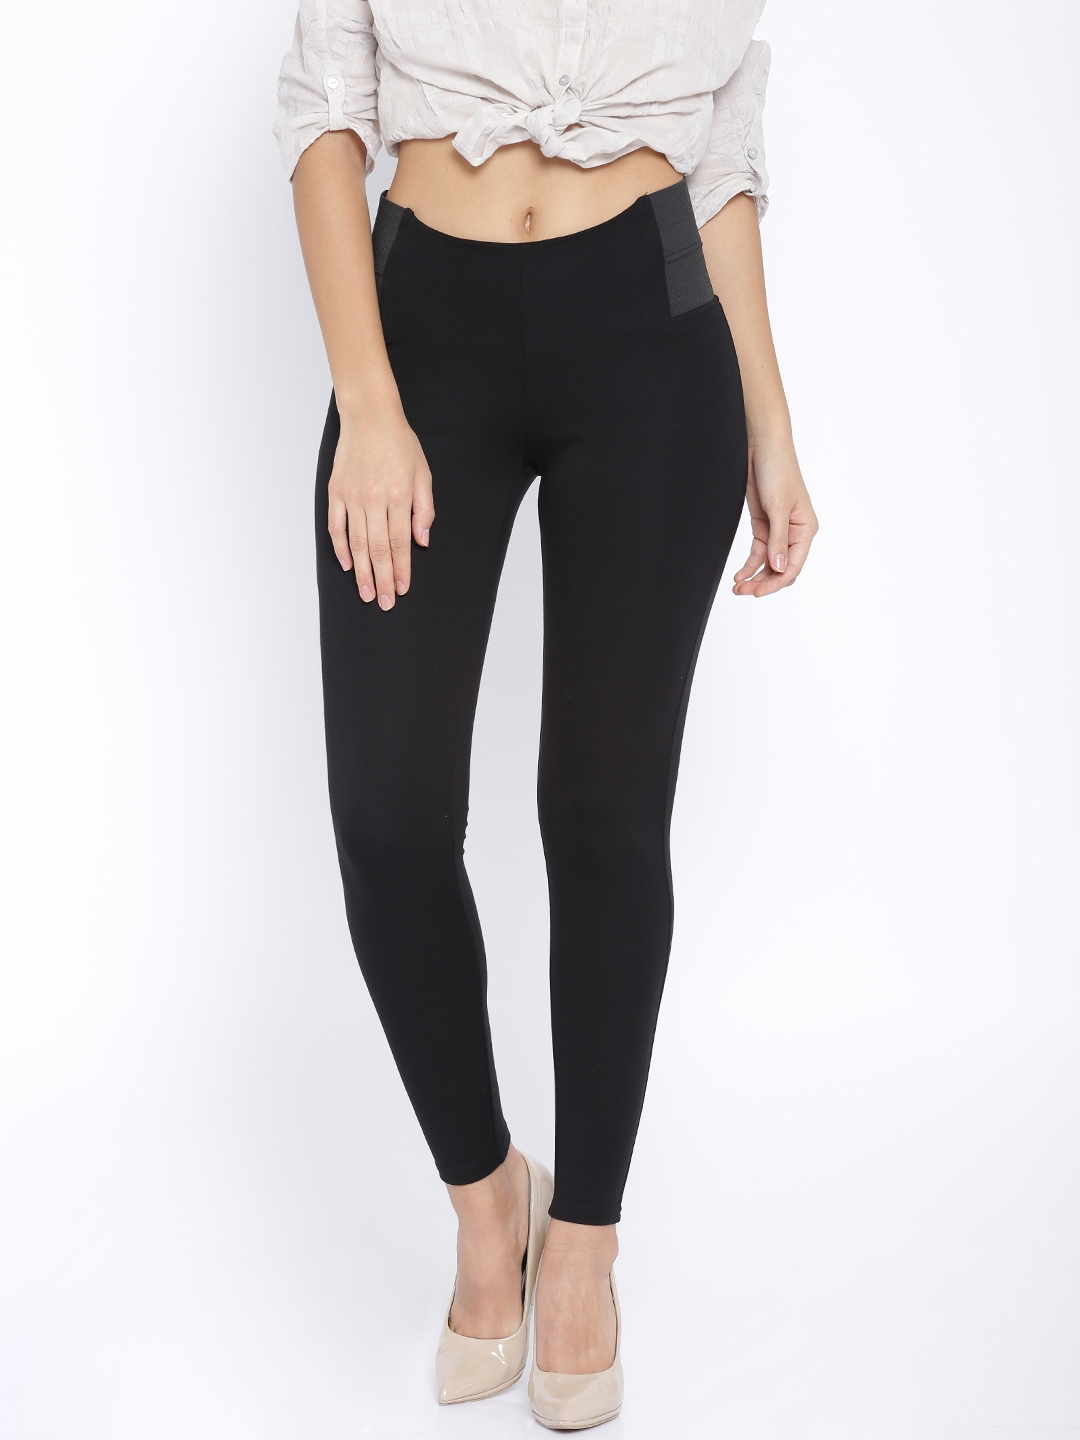 fdeb389286a3c7 Buy ONLY Black Jeggings - Jeggings for Women 1430777 | Myntra